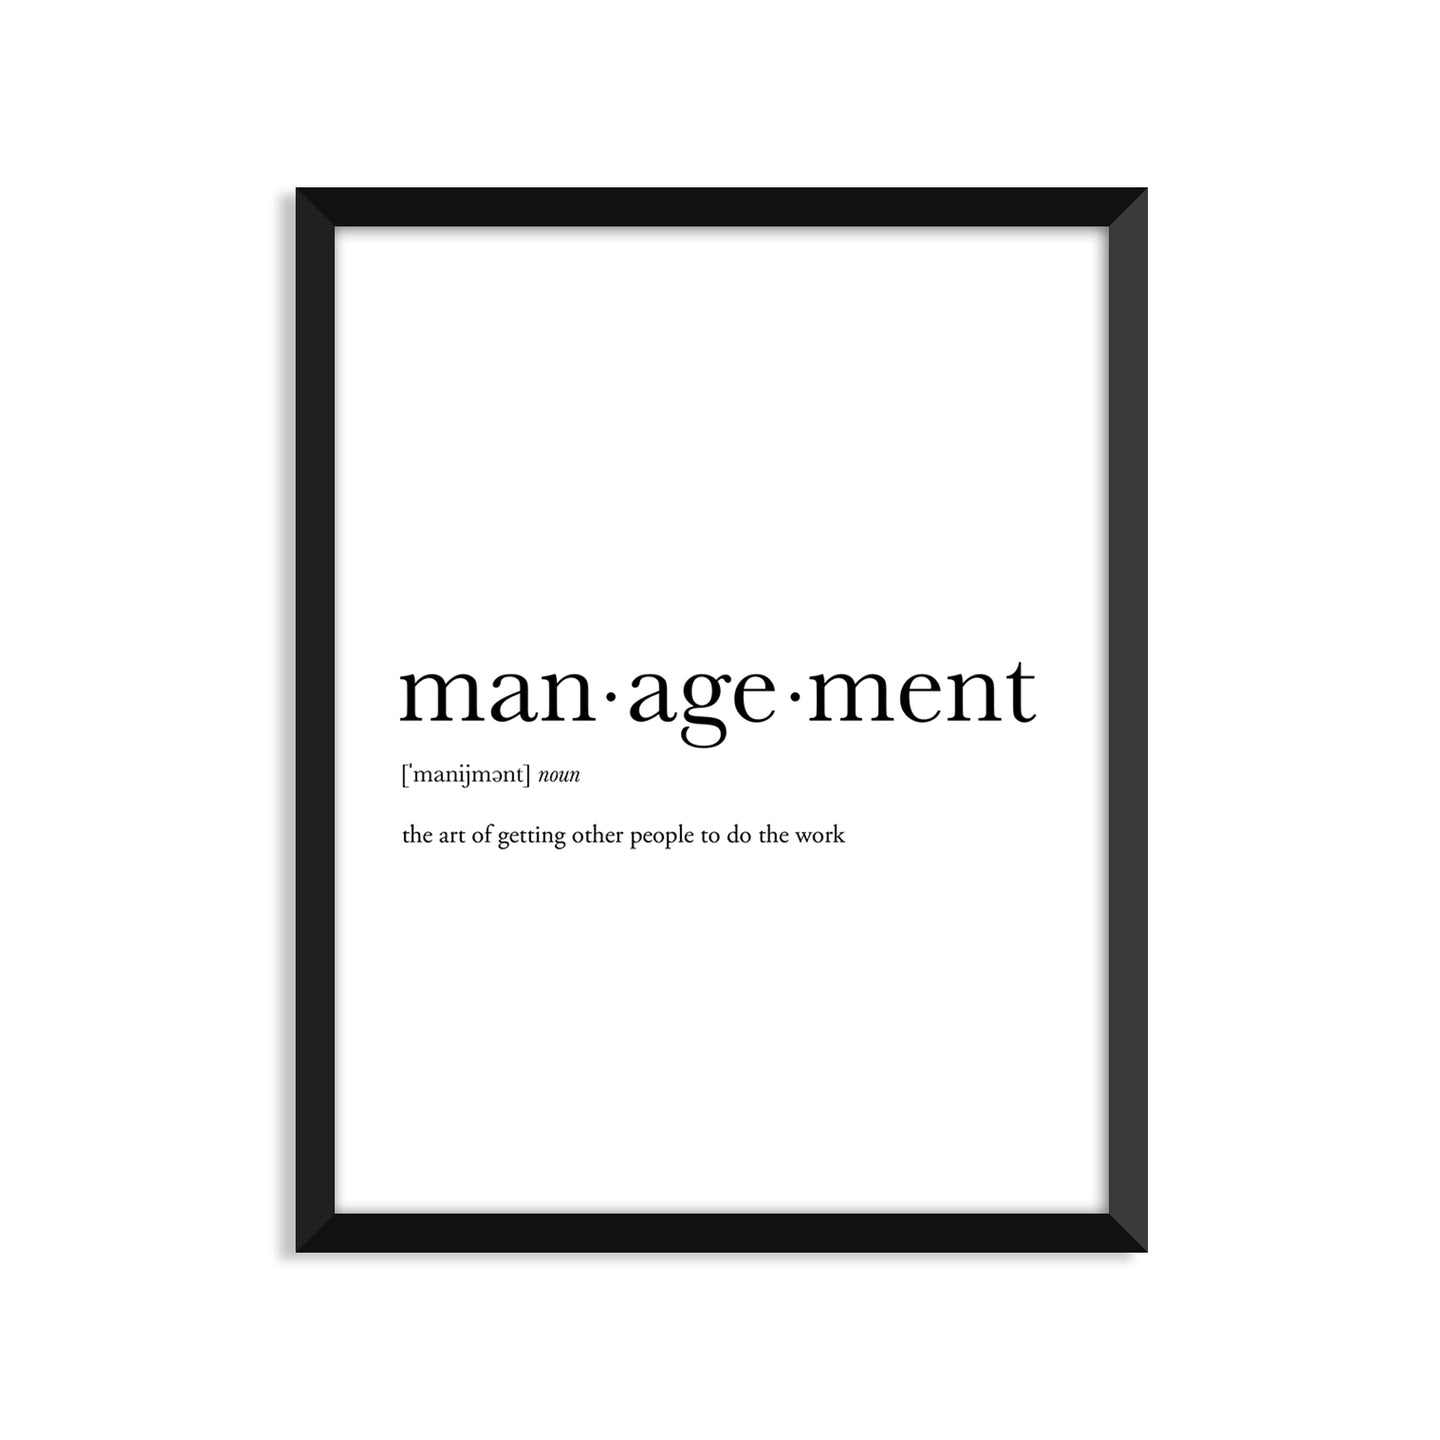 Management Definition - Unframed Art Print Or Greeting Card